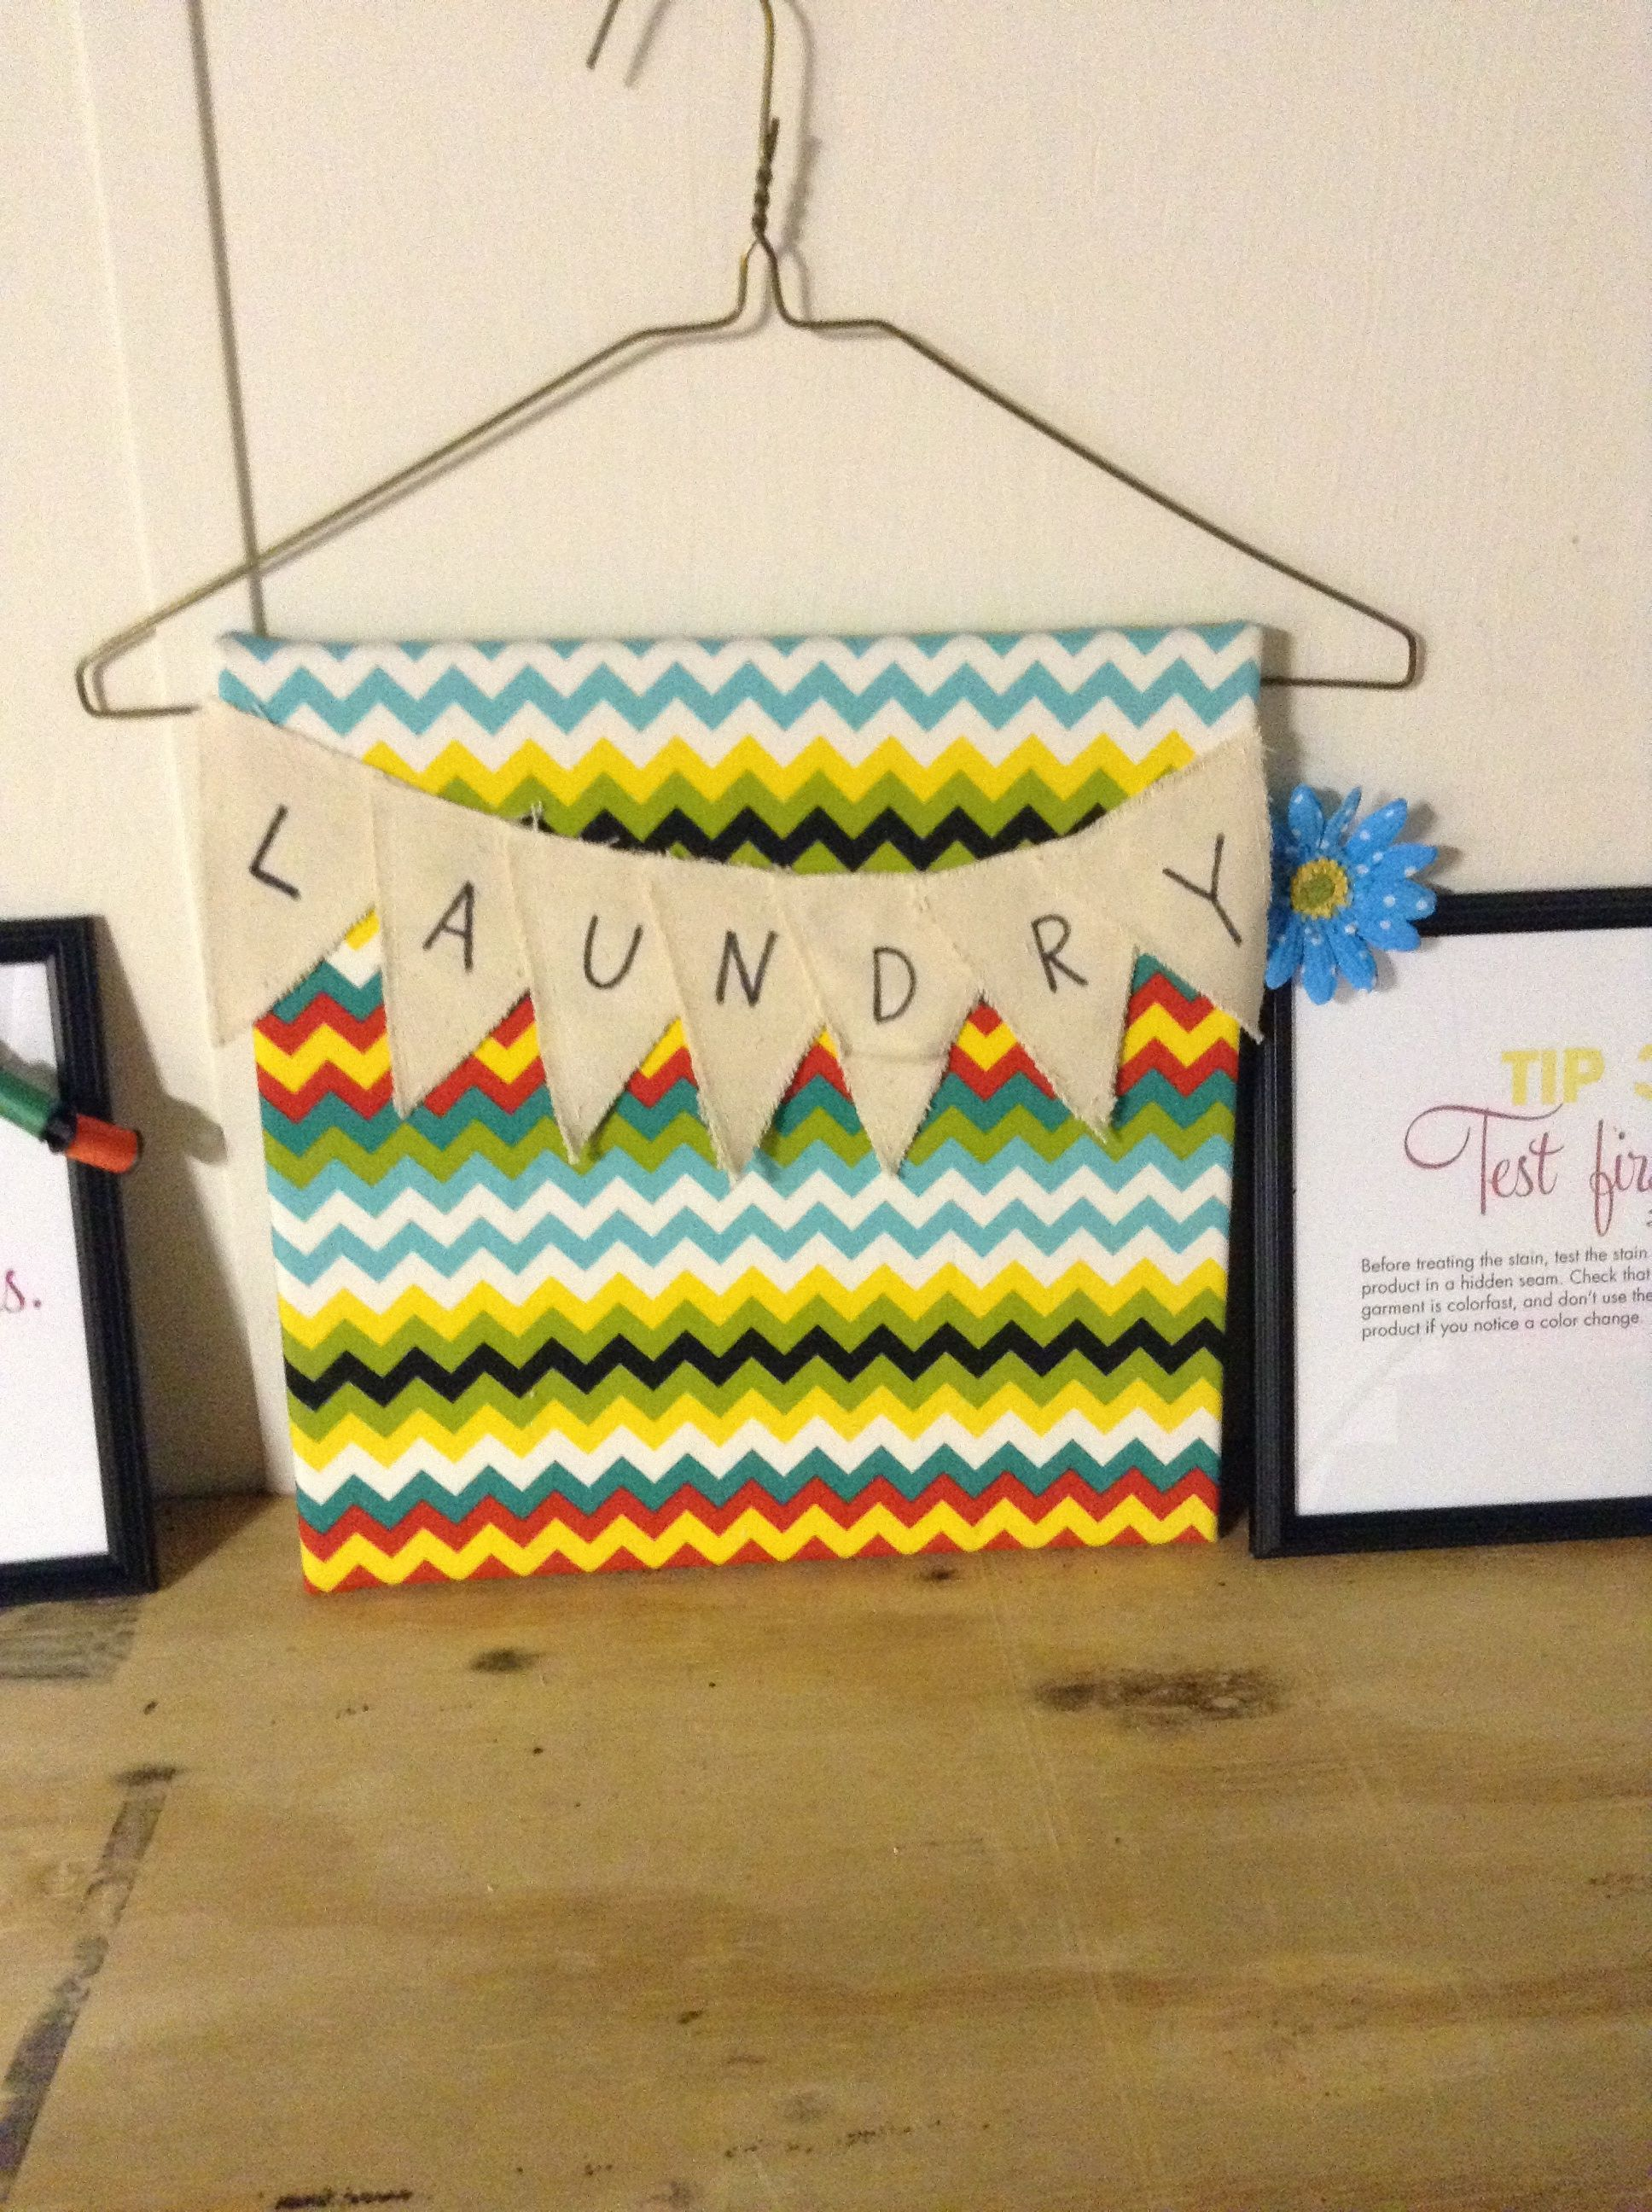 Laundry Room Sign Made With Fabric A Canvas A Hanger And Bunting Flags Laundry Room Signs Room Signs Bunting Flags